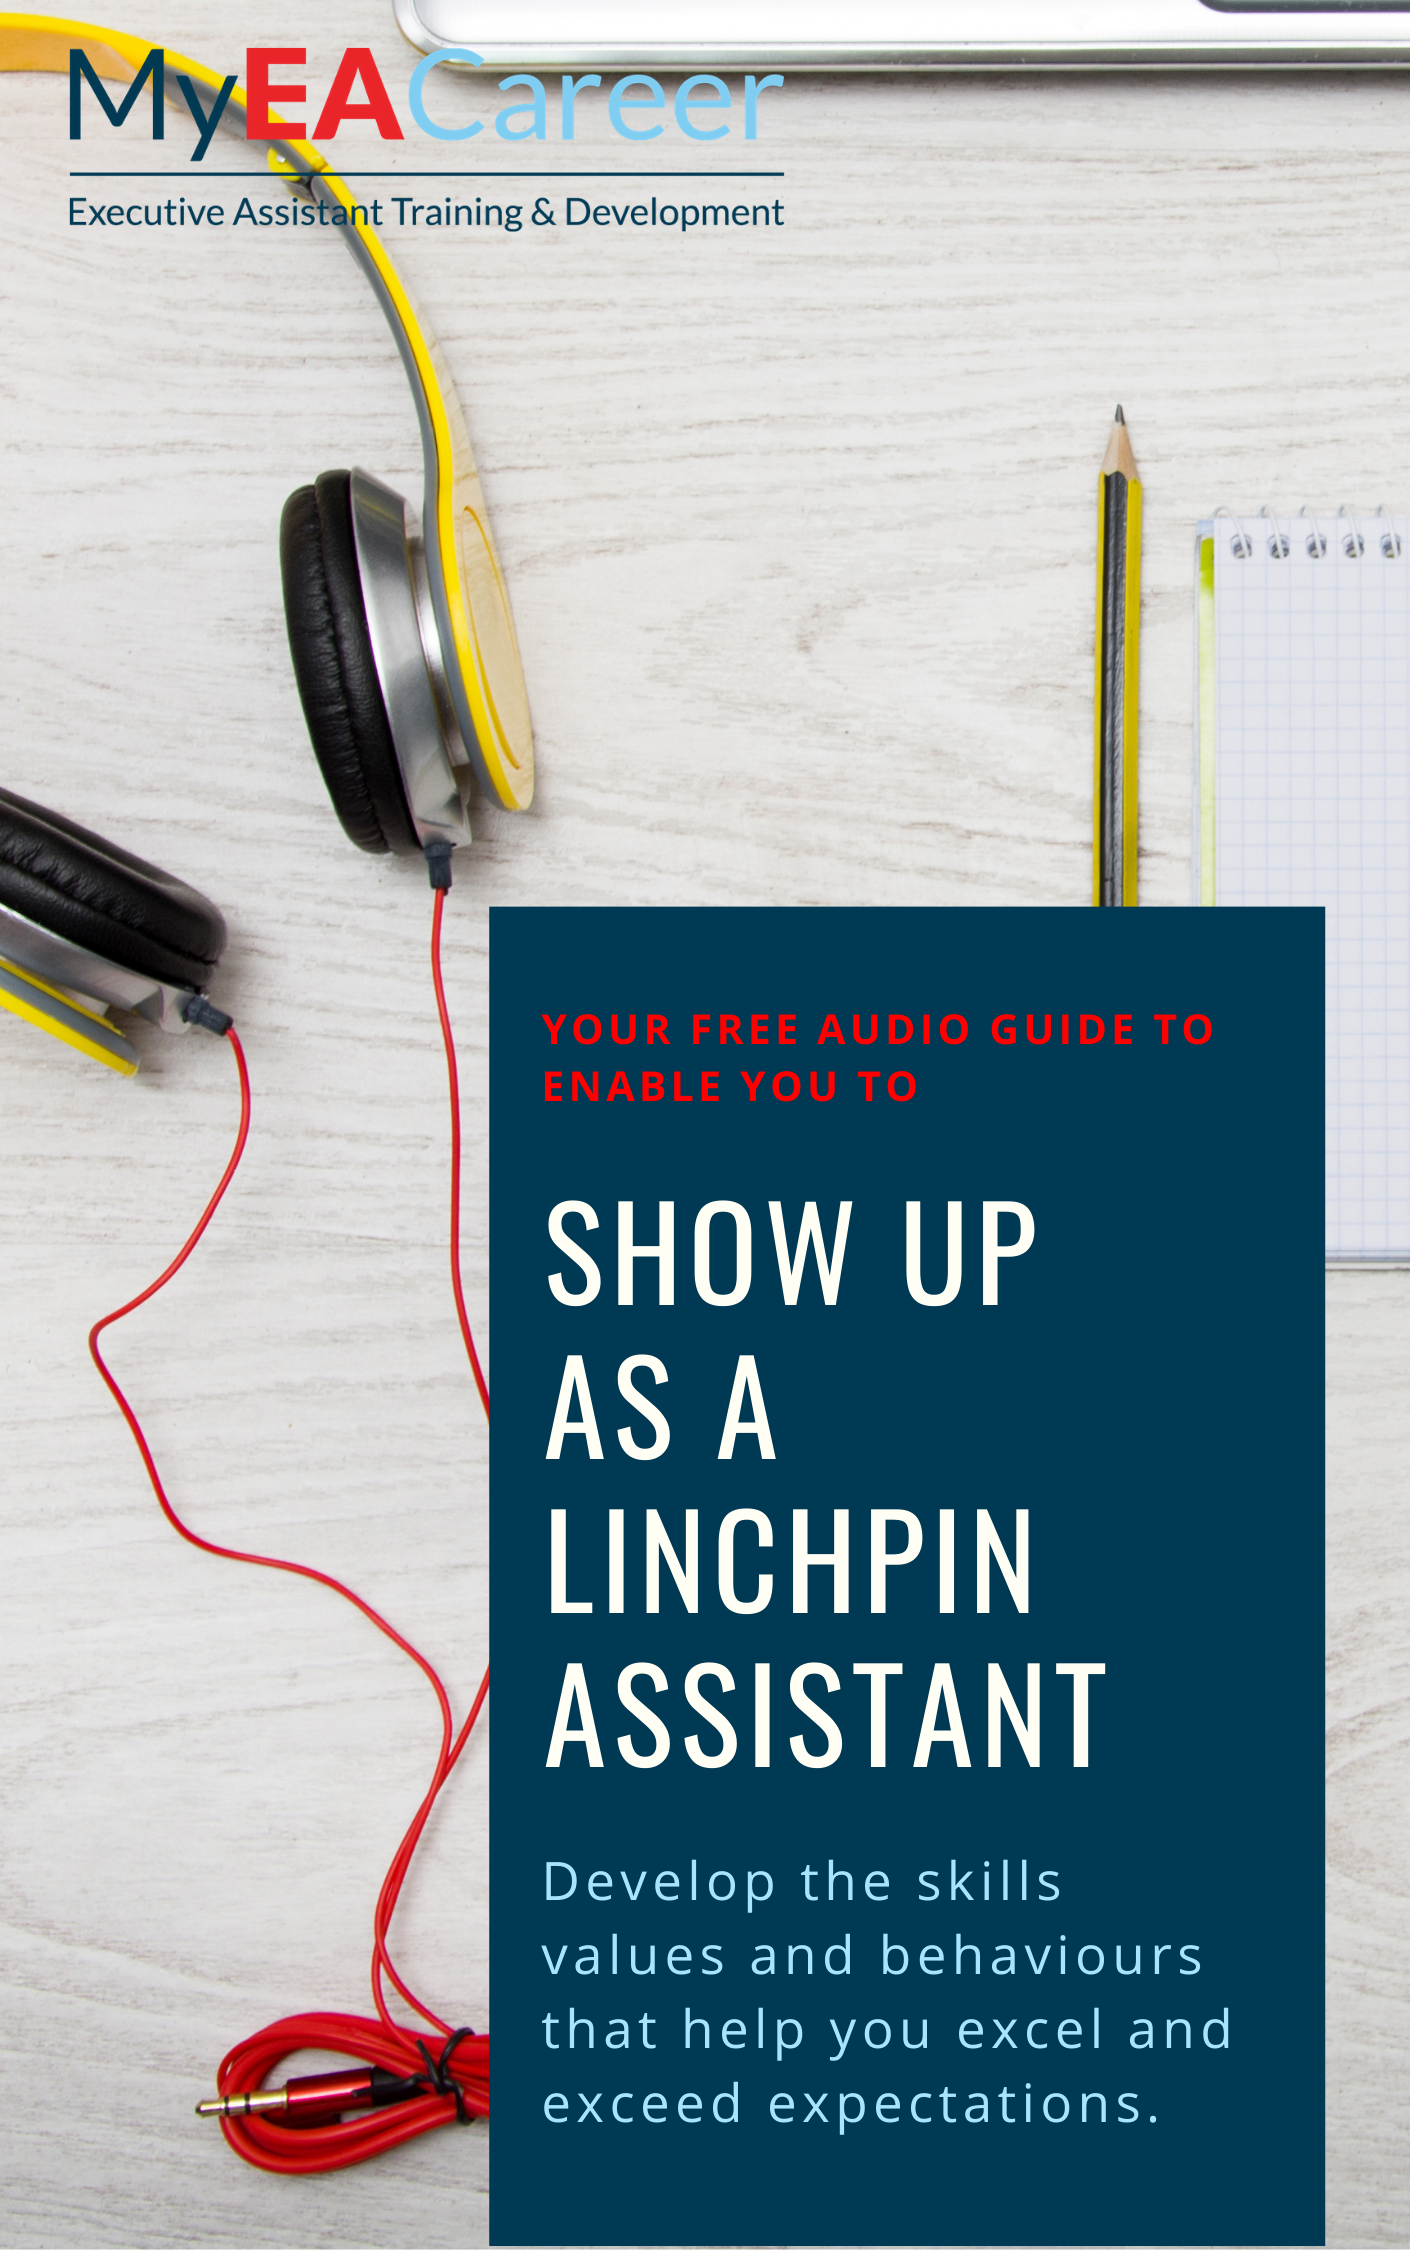 Your Audio Guide To Help You Show Up As A Linchpin Assistant